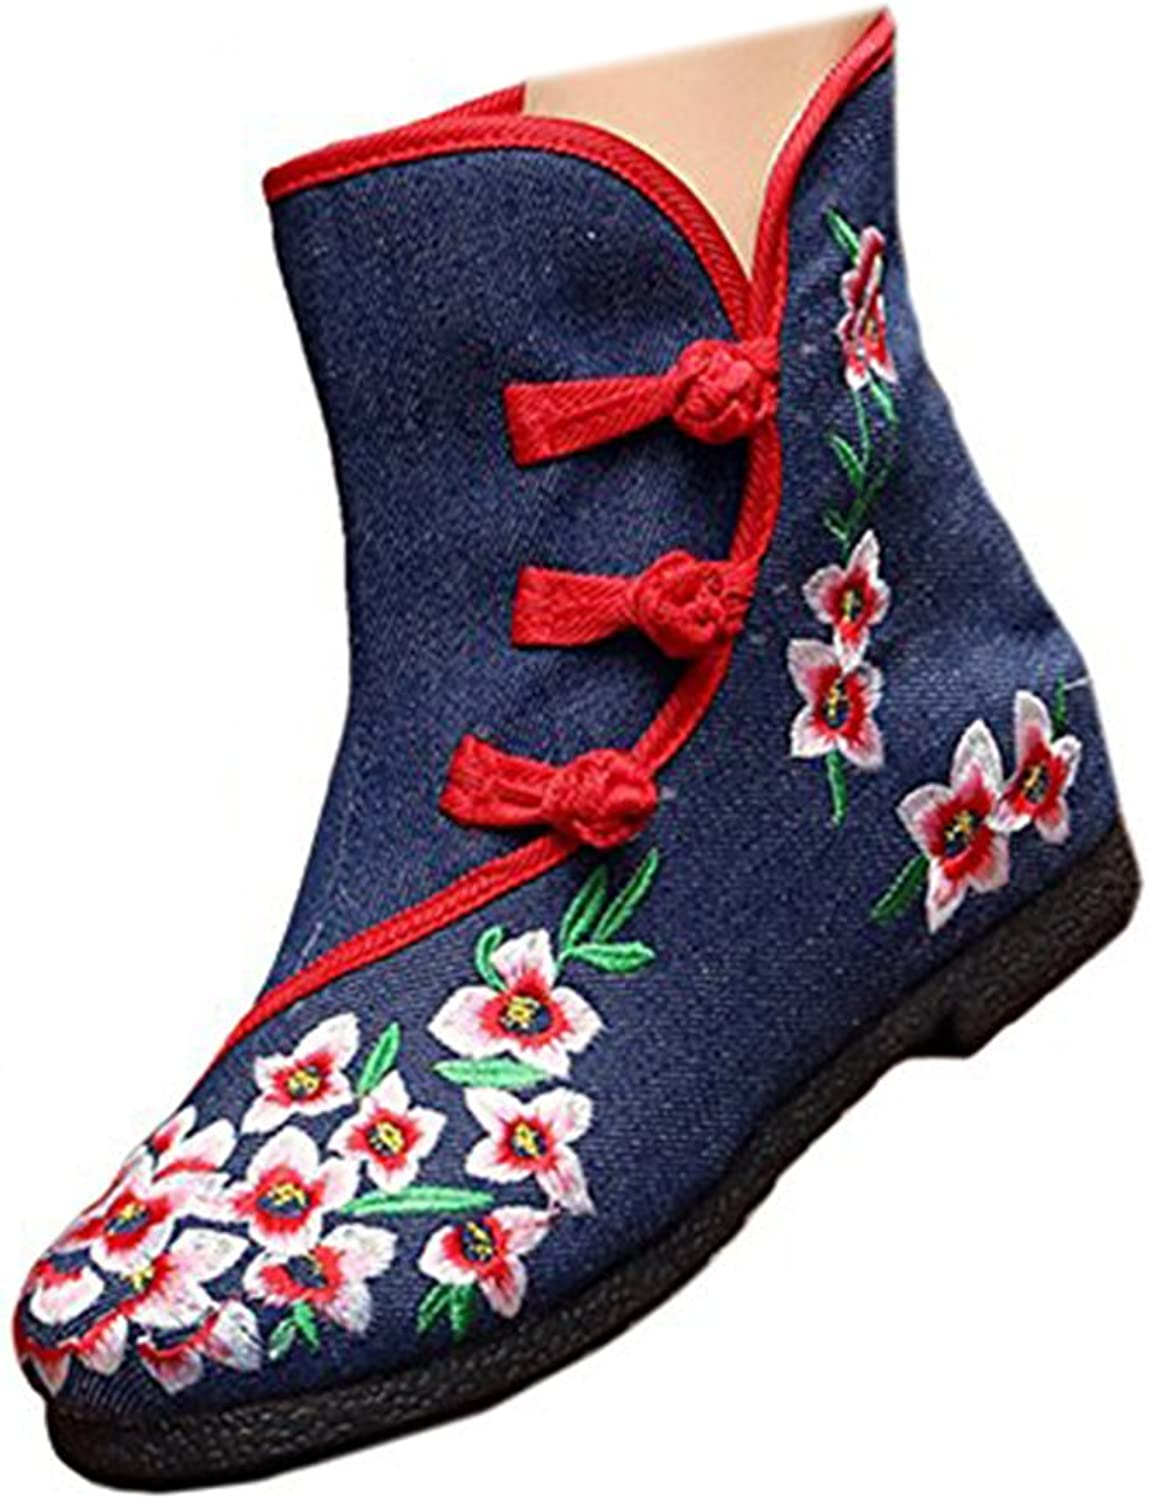 Shenghuajie Vintage Beijing Cloth shoes Embroidered Boots 12-02 bluee with Cotton